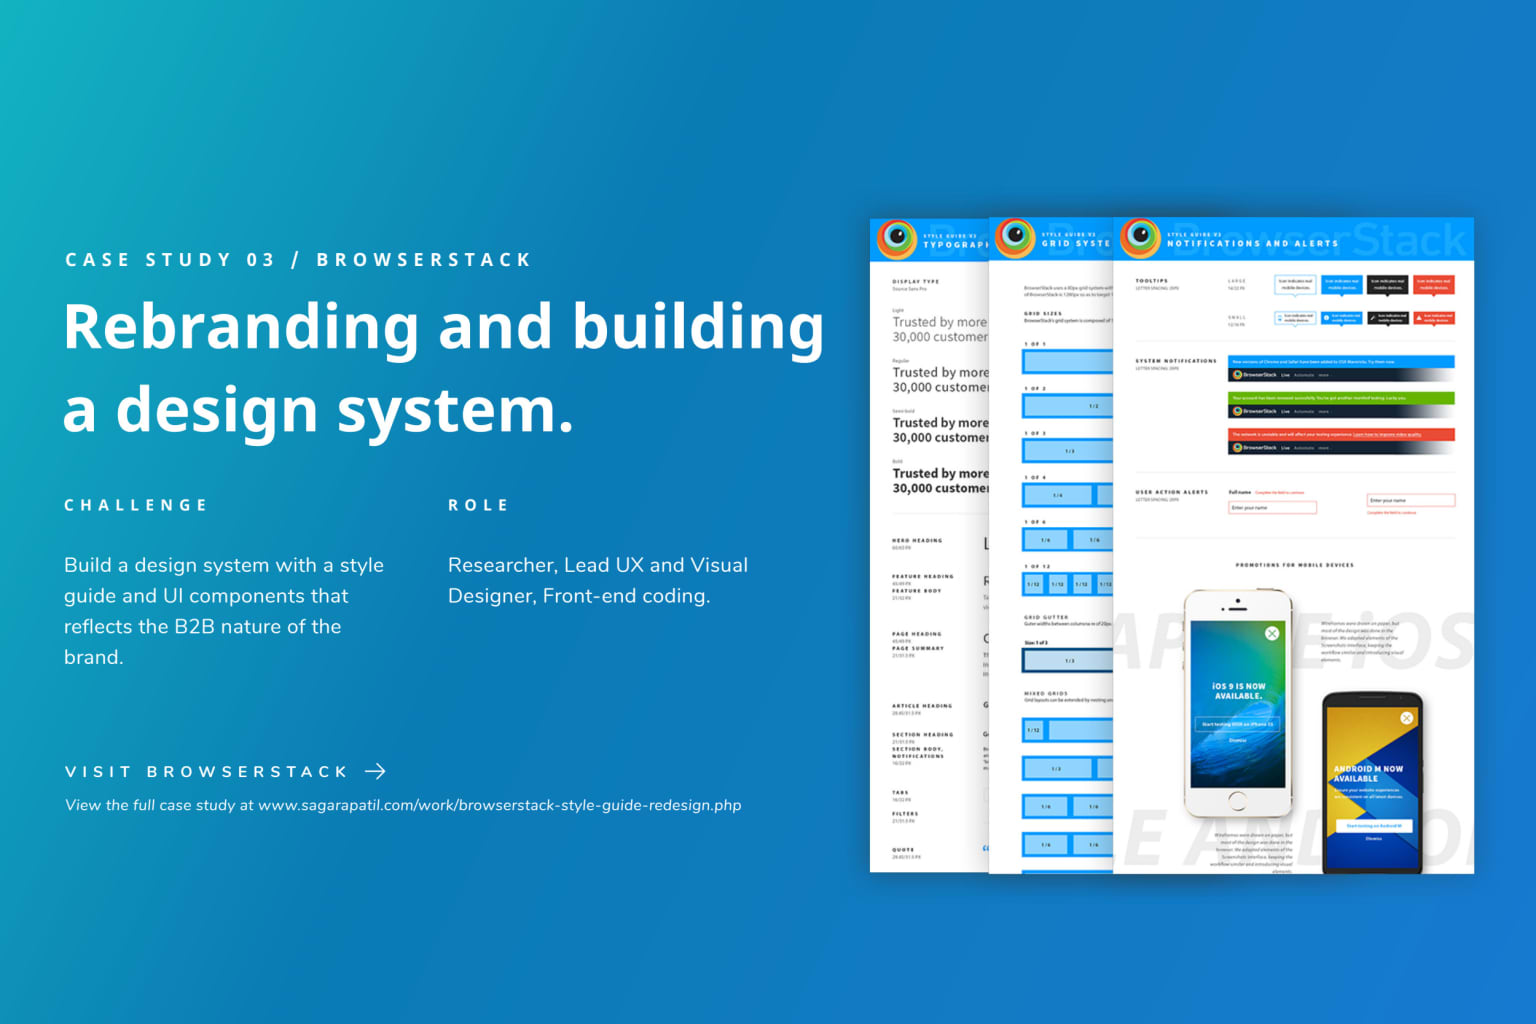 Rebranding and building a design system.